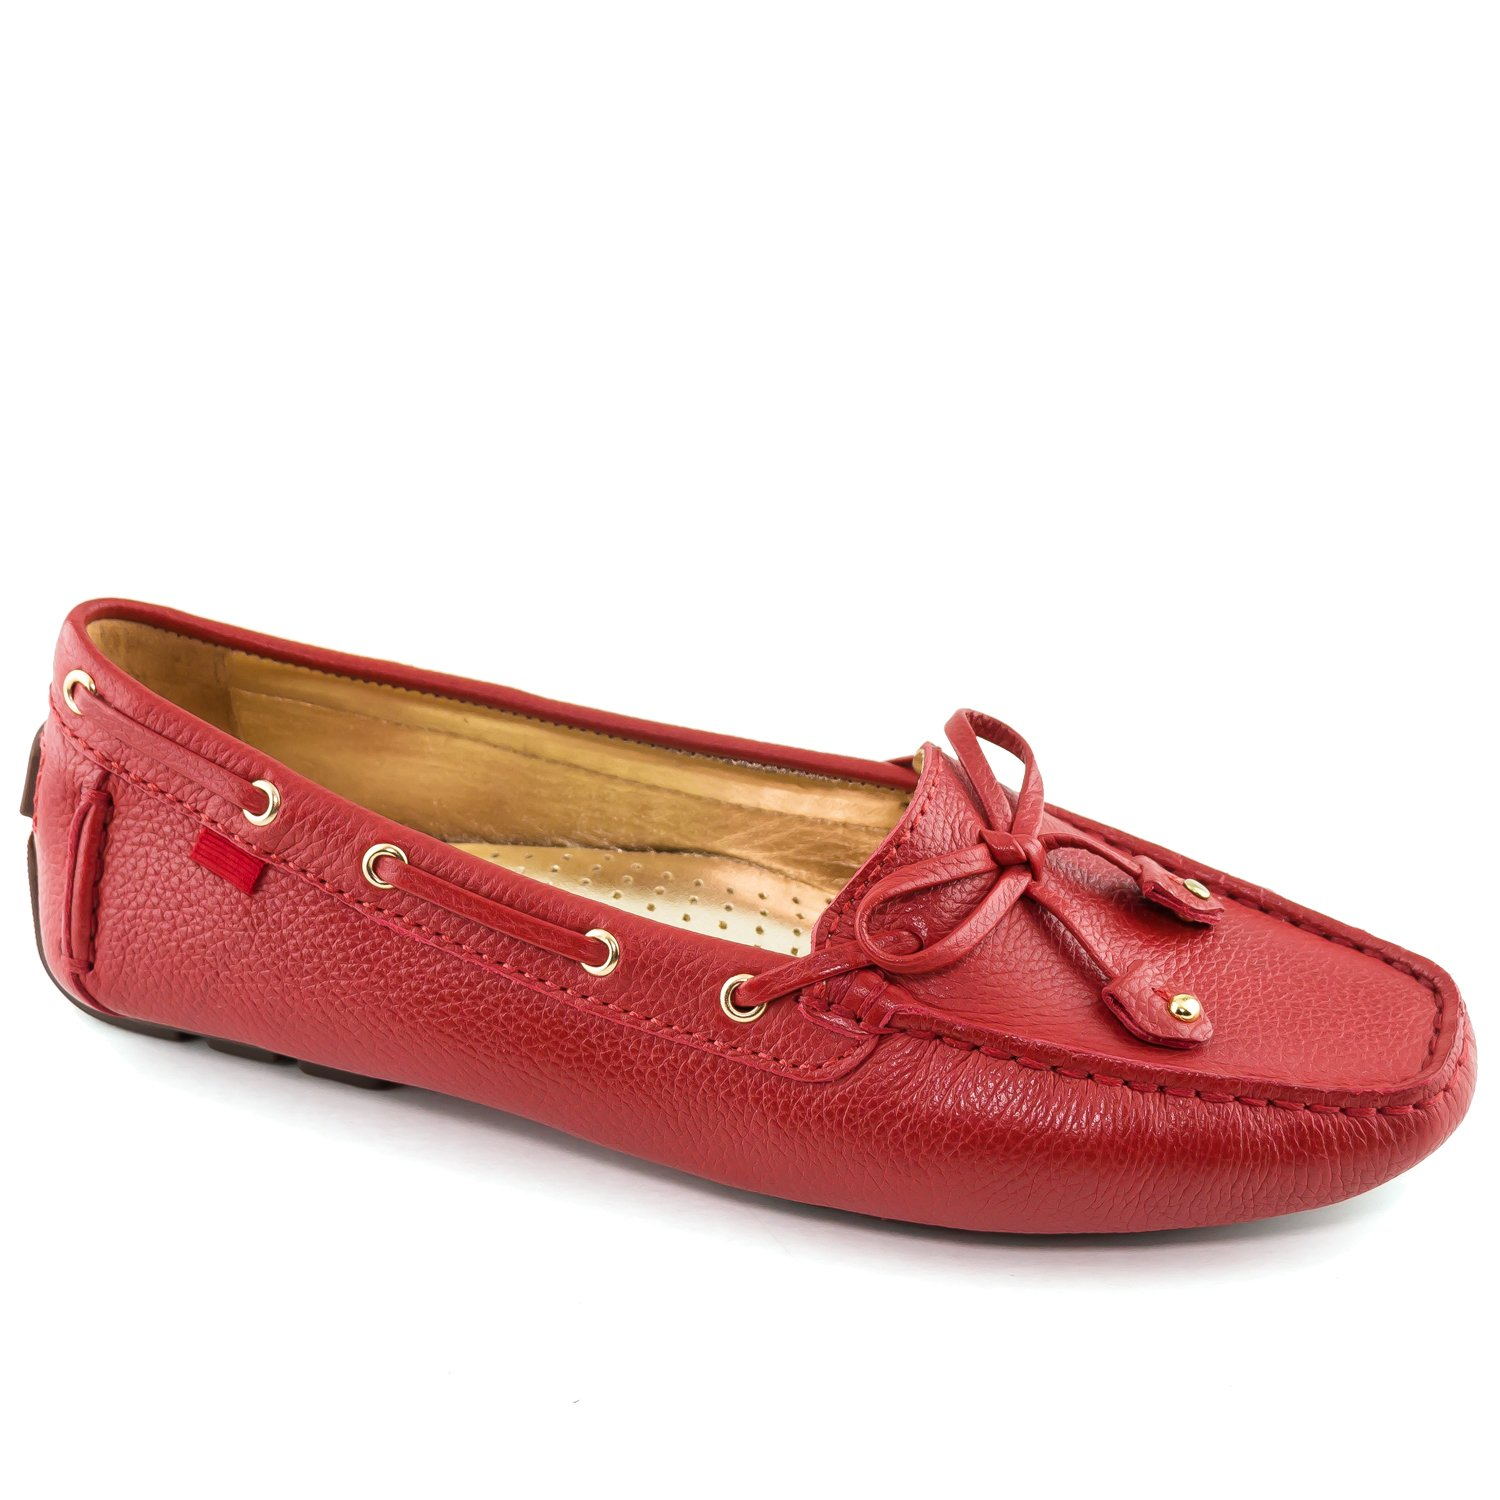 Marc Joseph New York Women's Cypress Hill Red Grainy Driver Loafer 7.5